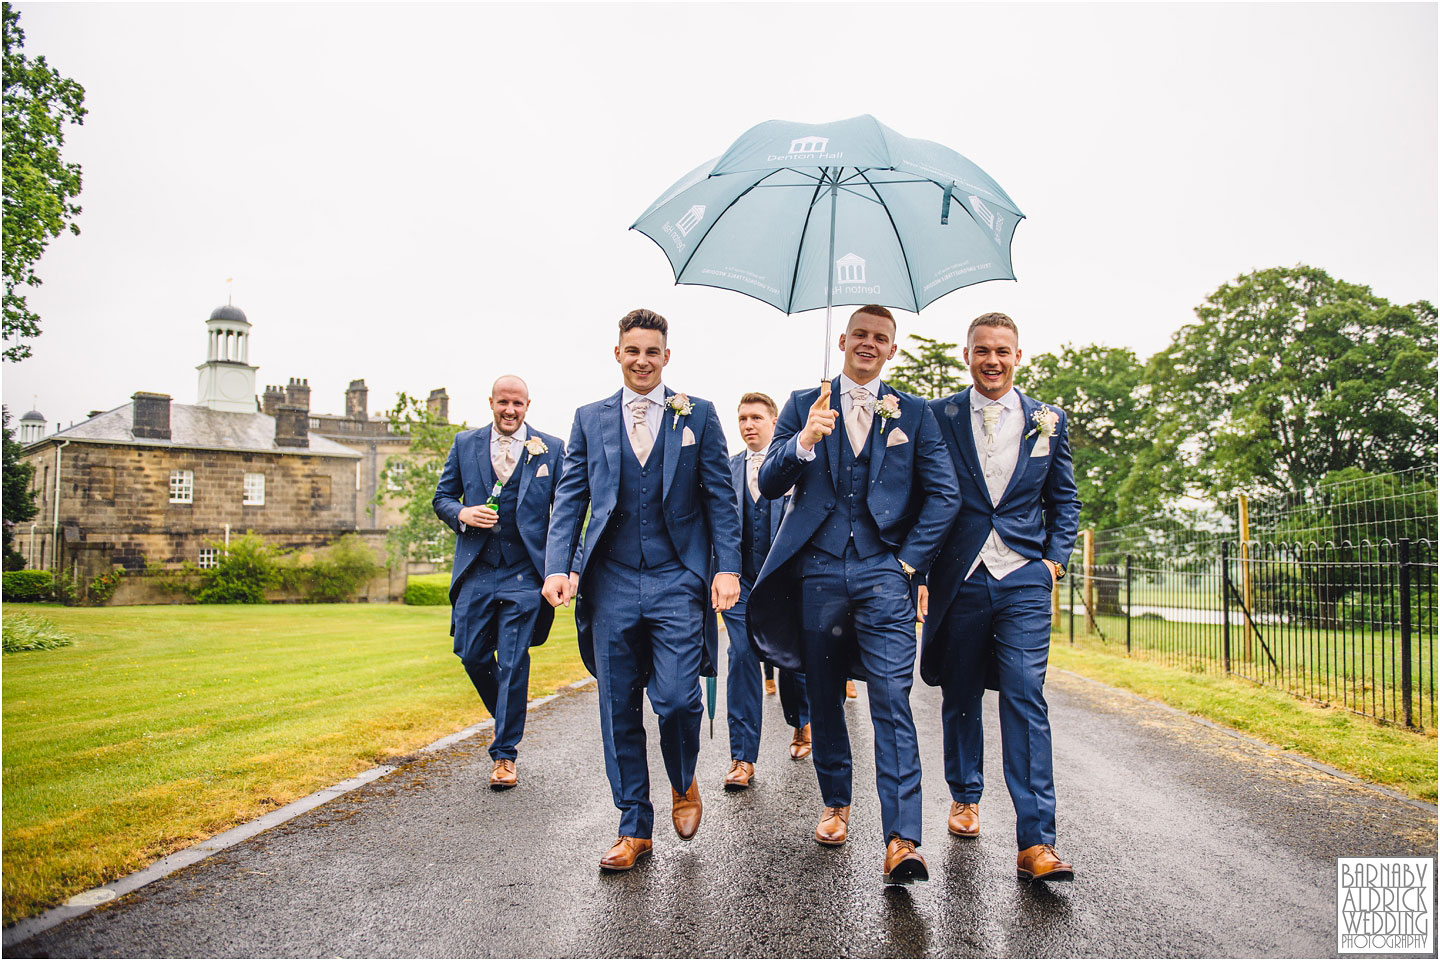 Denton Hall Wedding Photography, Wedding photos at Denton Hall in Yorkshire, Ilkley Wedding Photographer